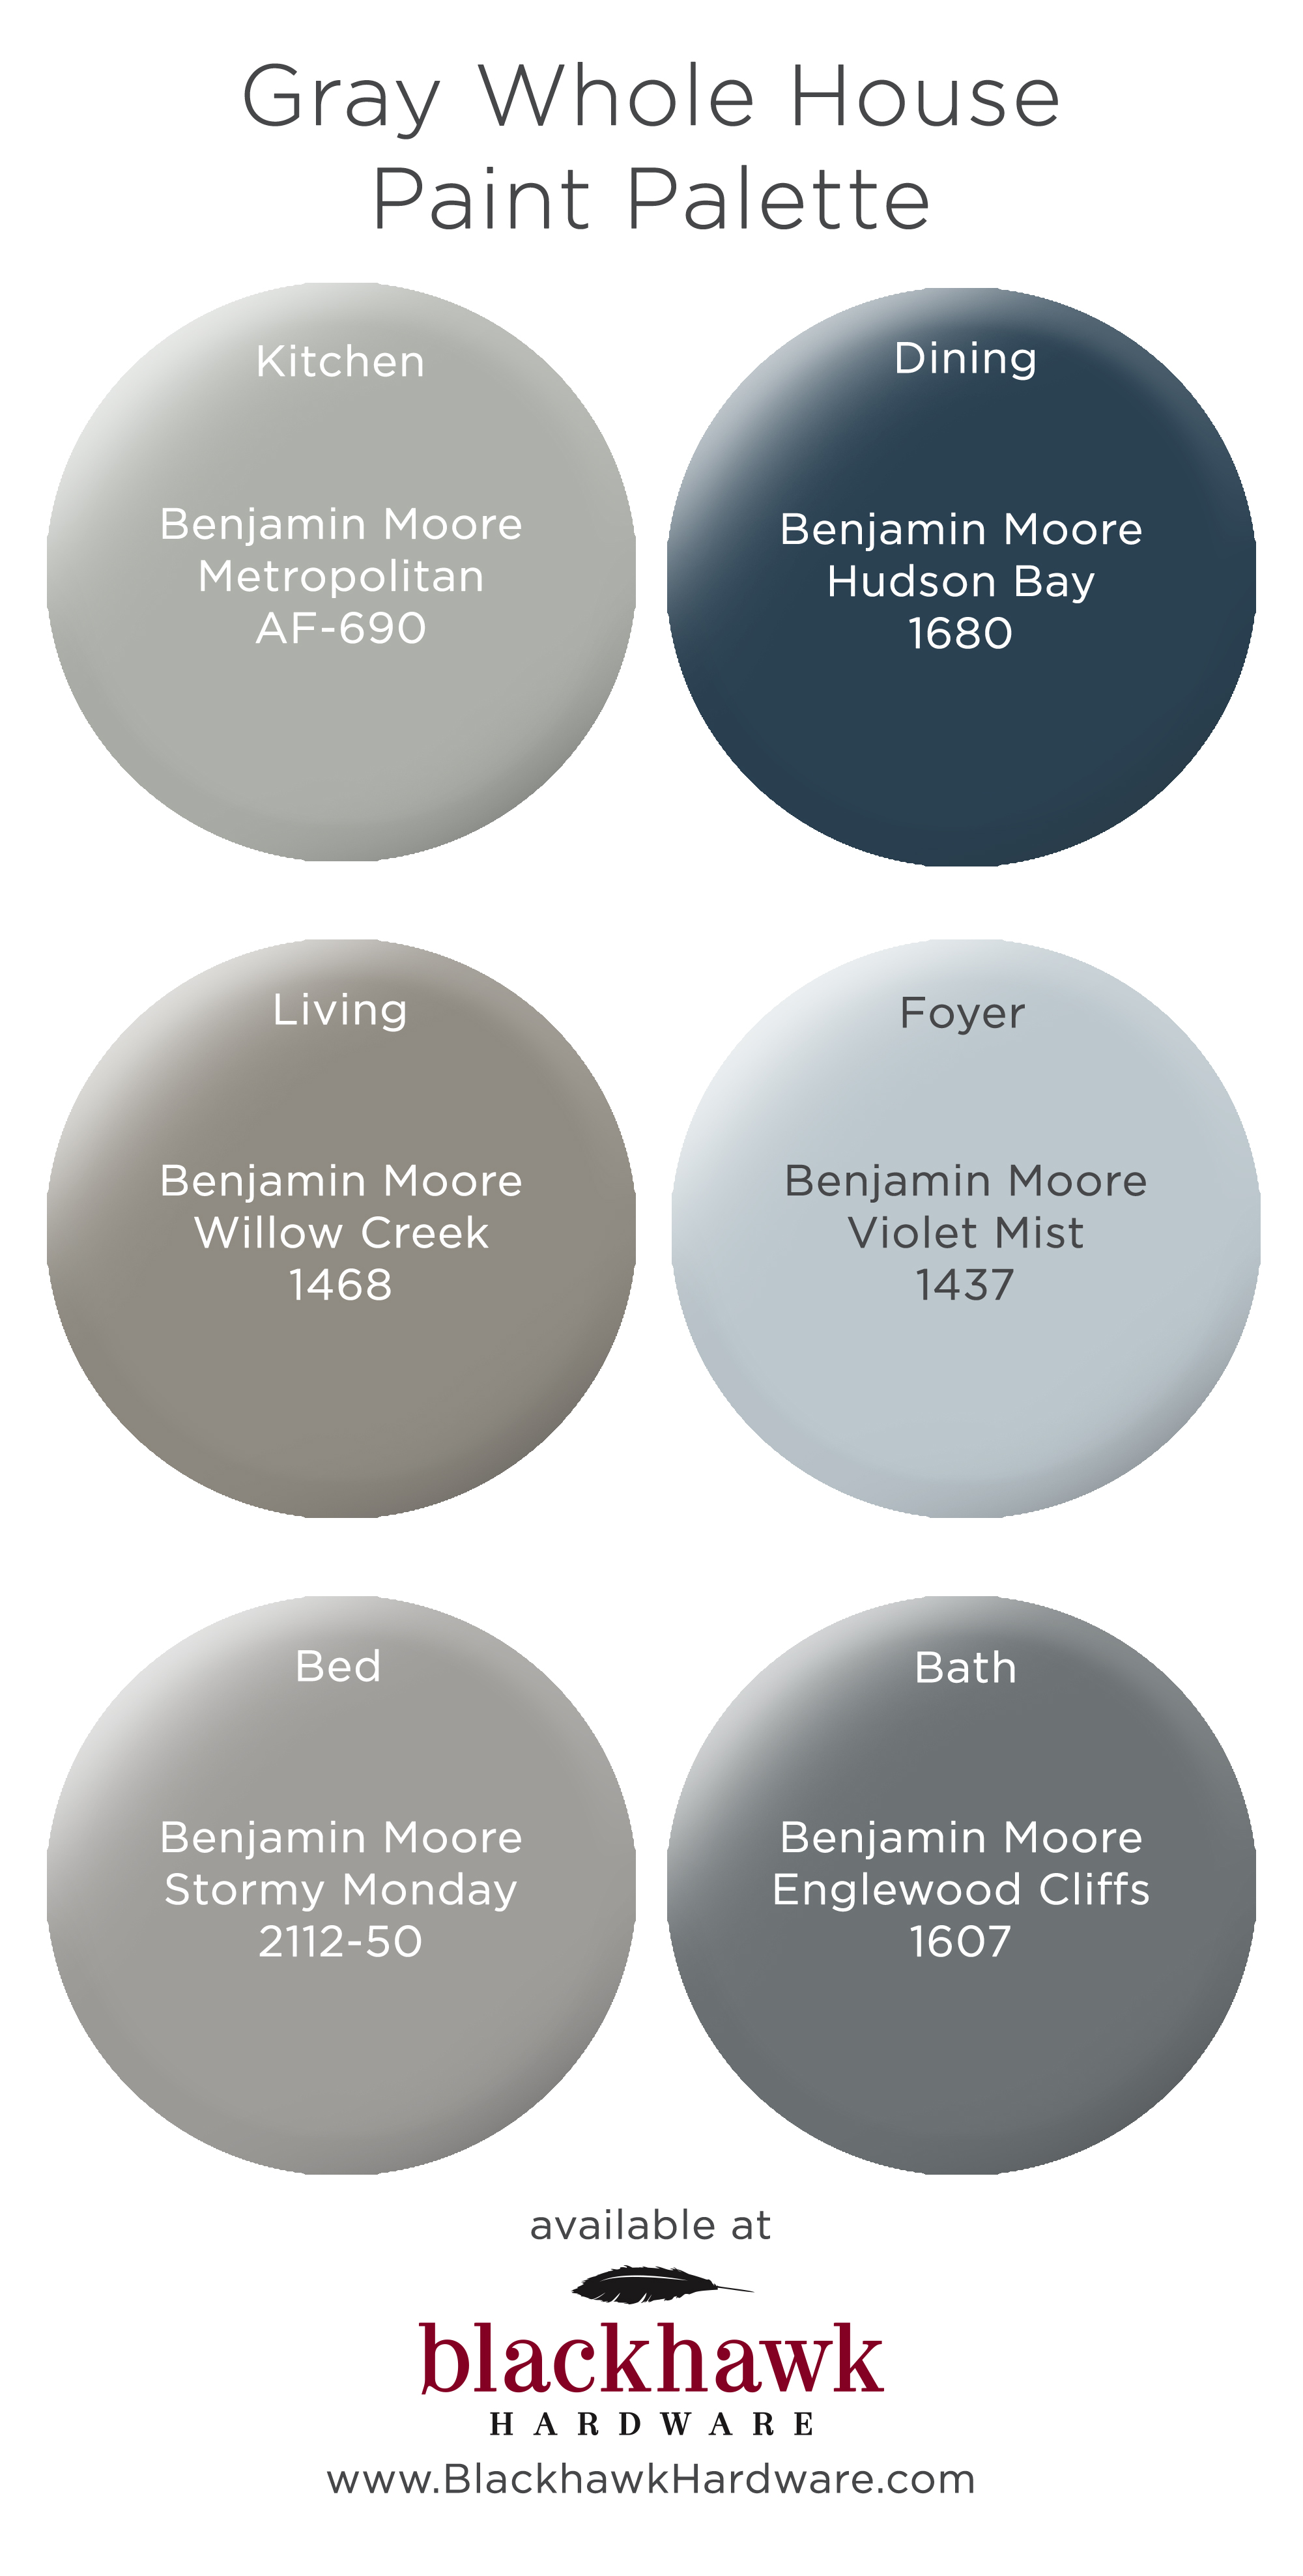 Metropolitan Benjamin Moore Whole House Paint Palettes By Benjamin Moore Blackhawk Hardware